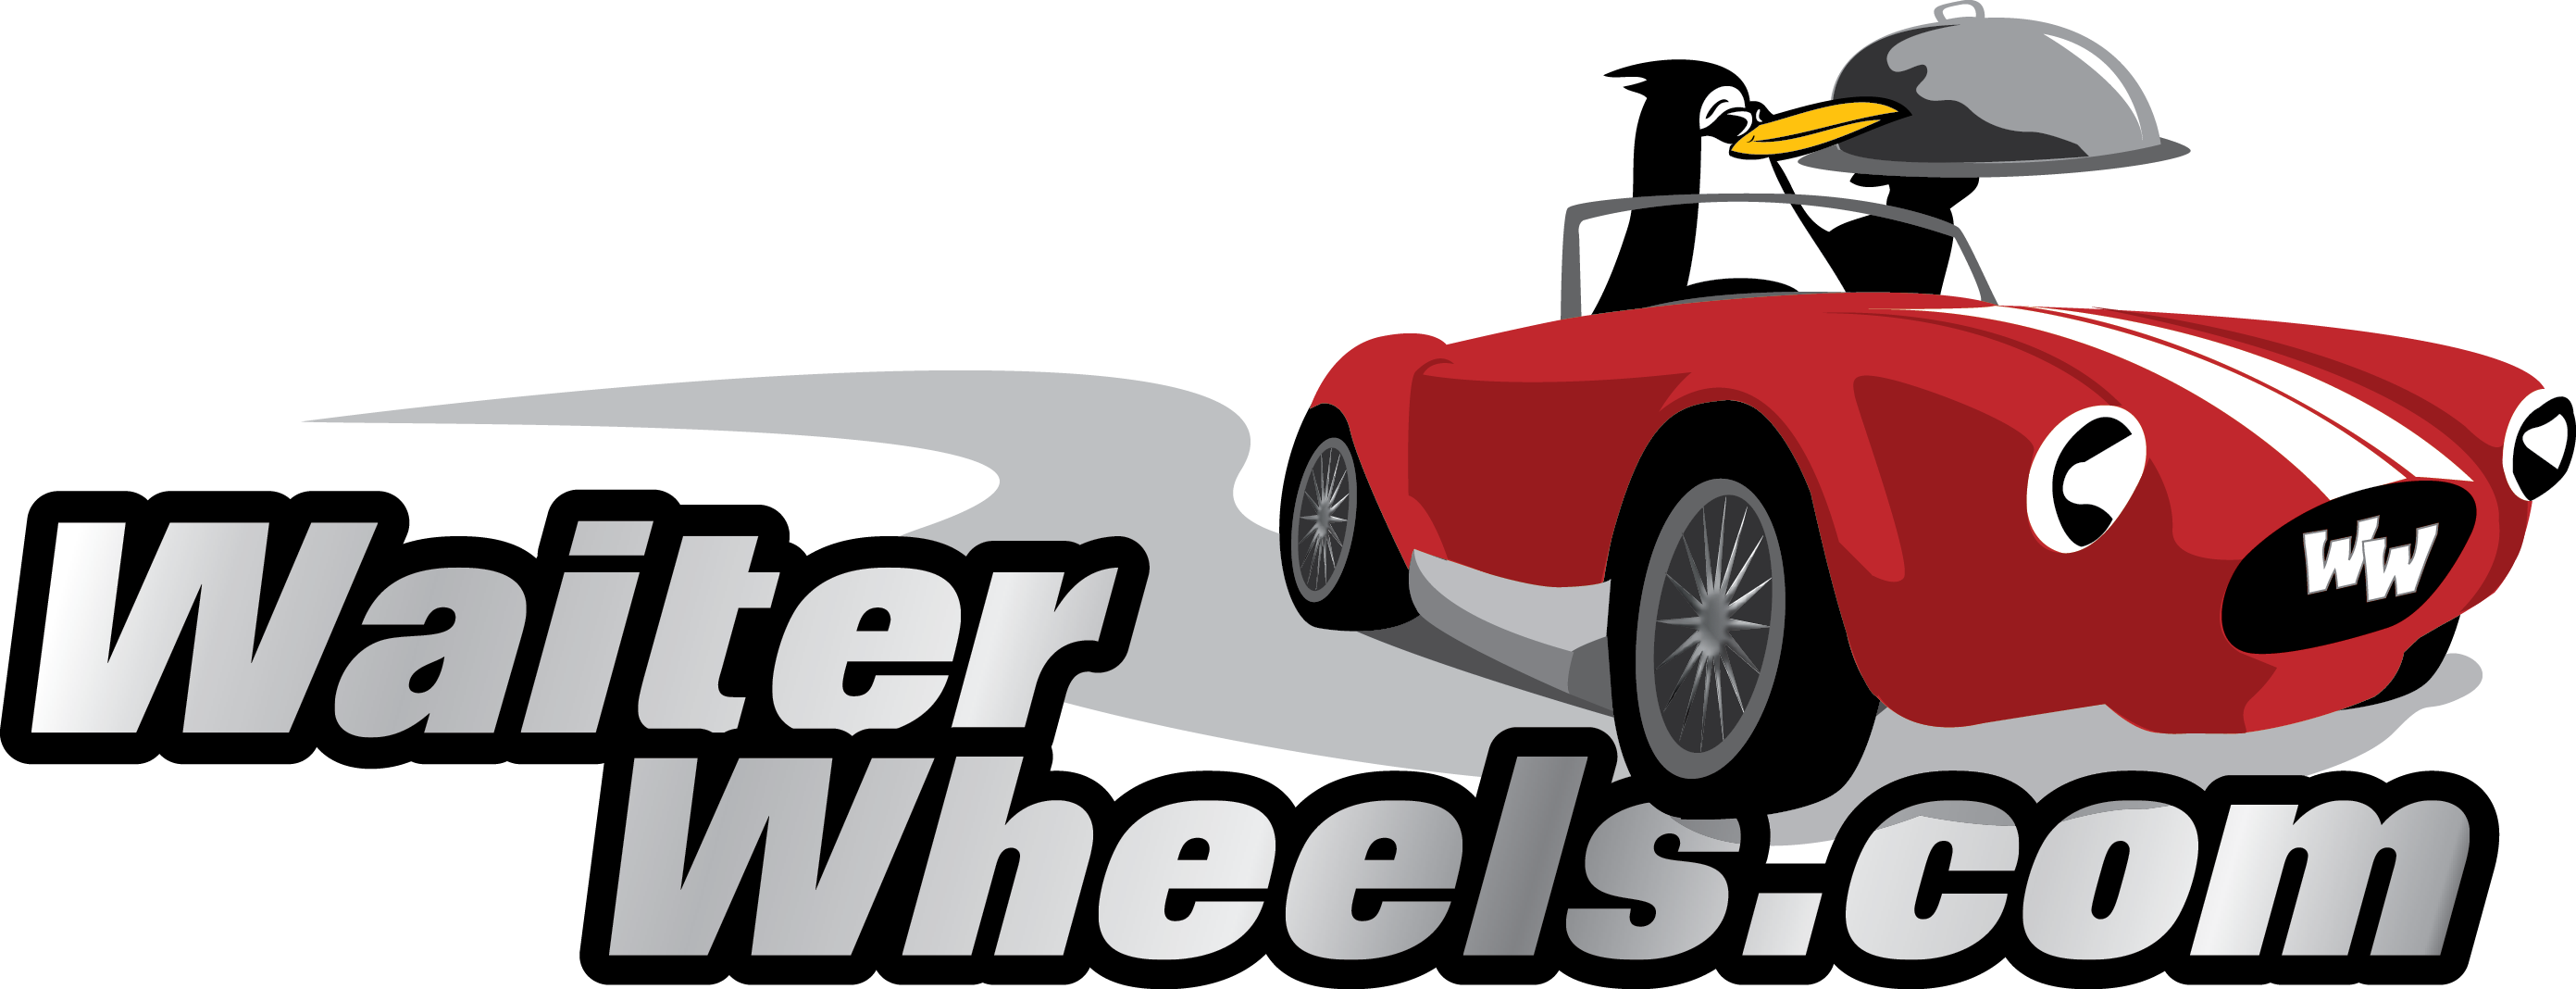 waiters on wheels coupon code